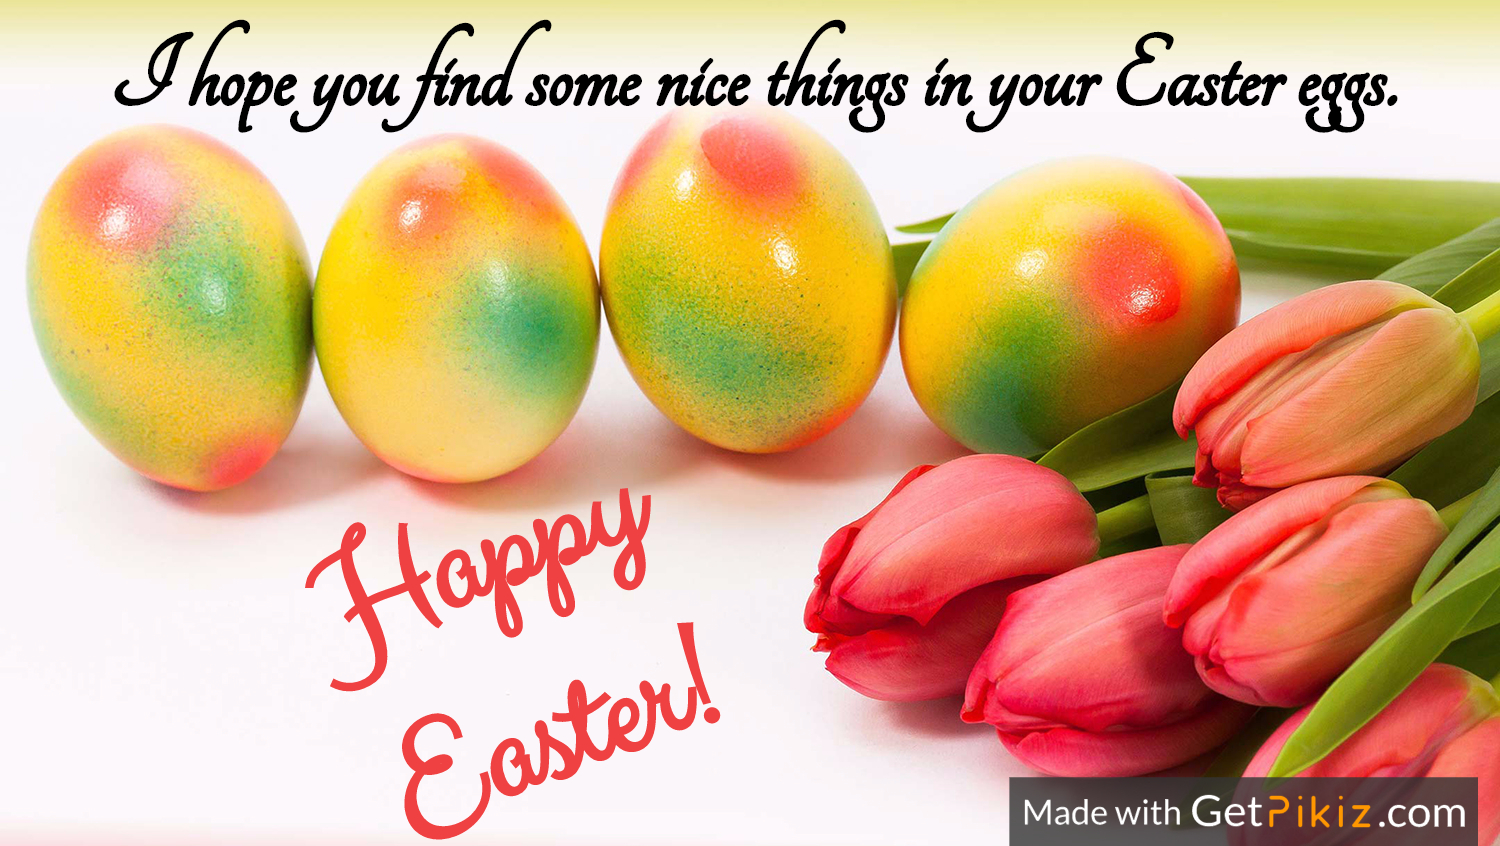 I hope you find some nice things in your Easter eggs. Happy Easter!